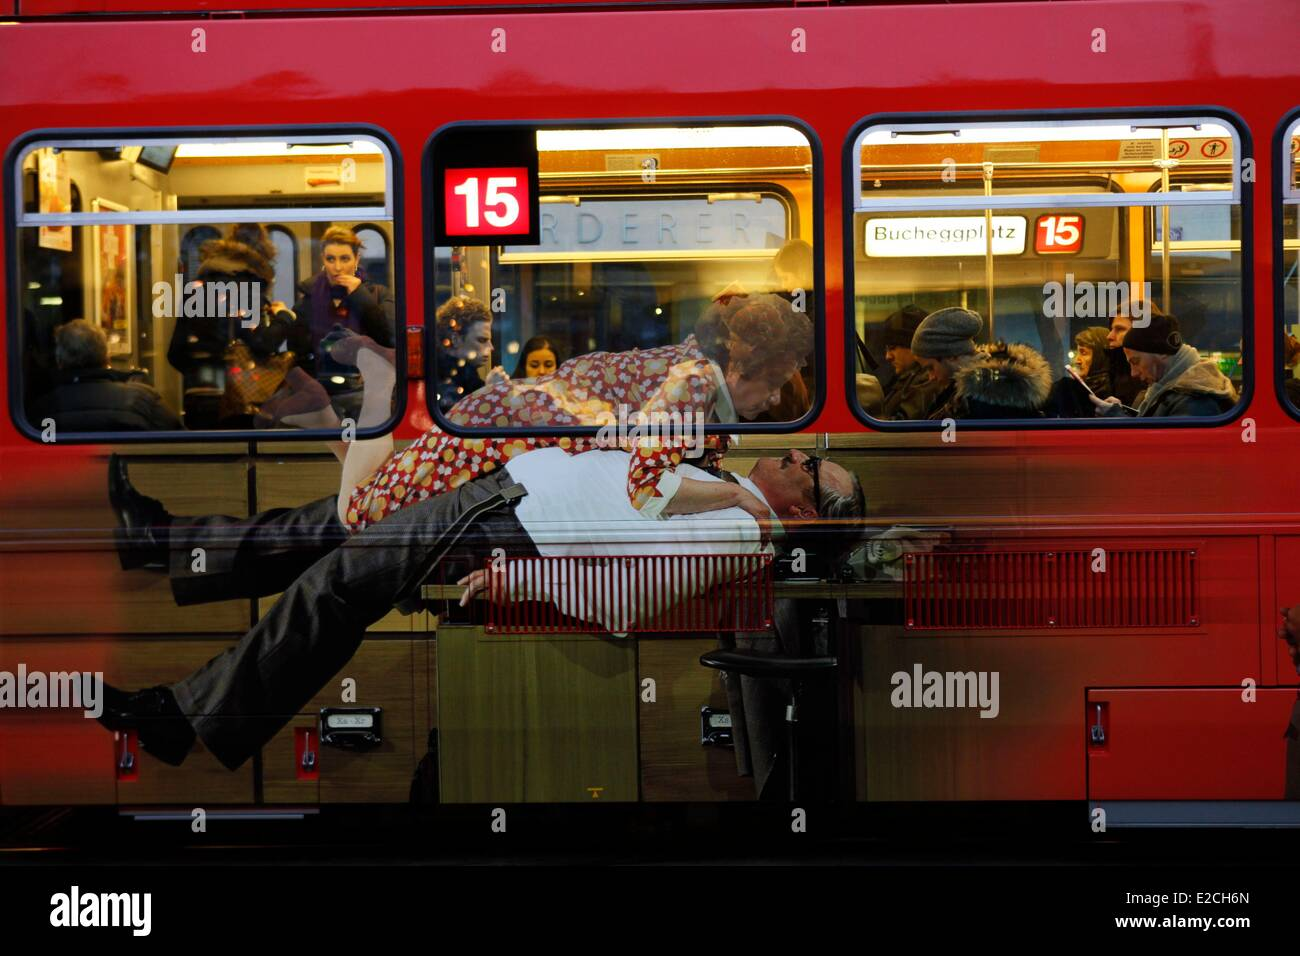 Switzerland, Zurich tram painted - Stock Image